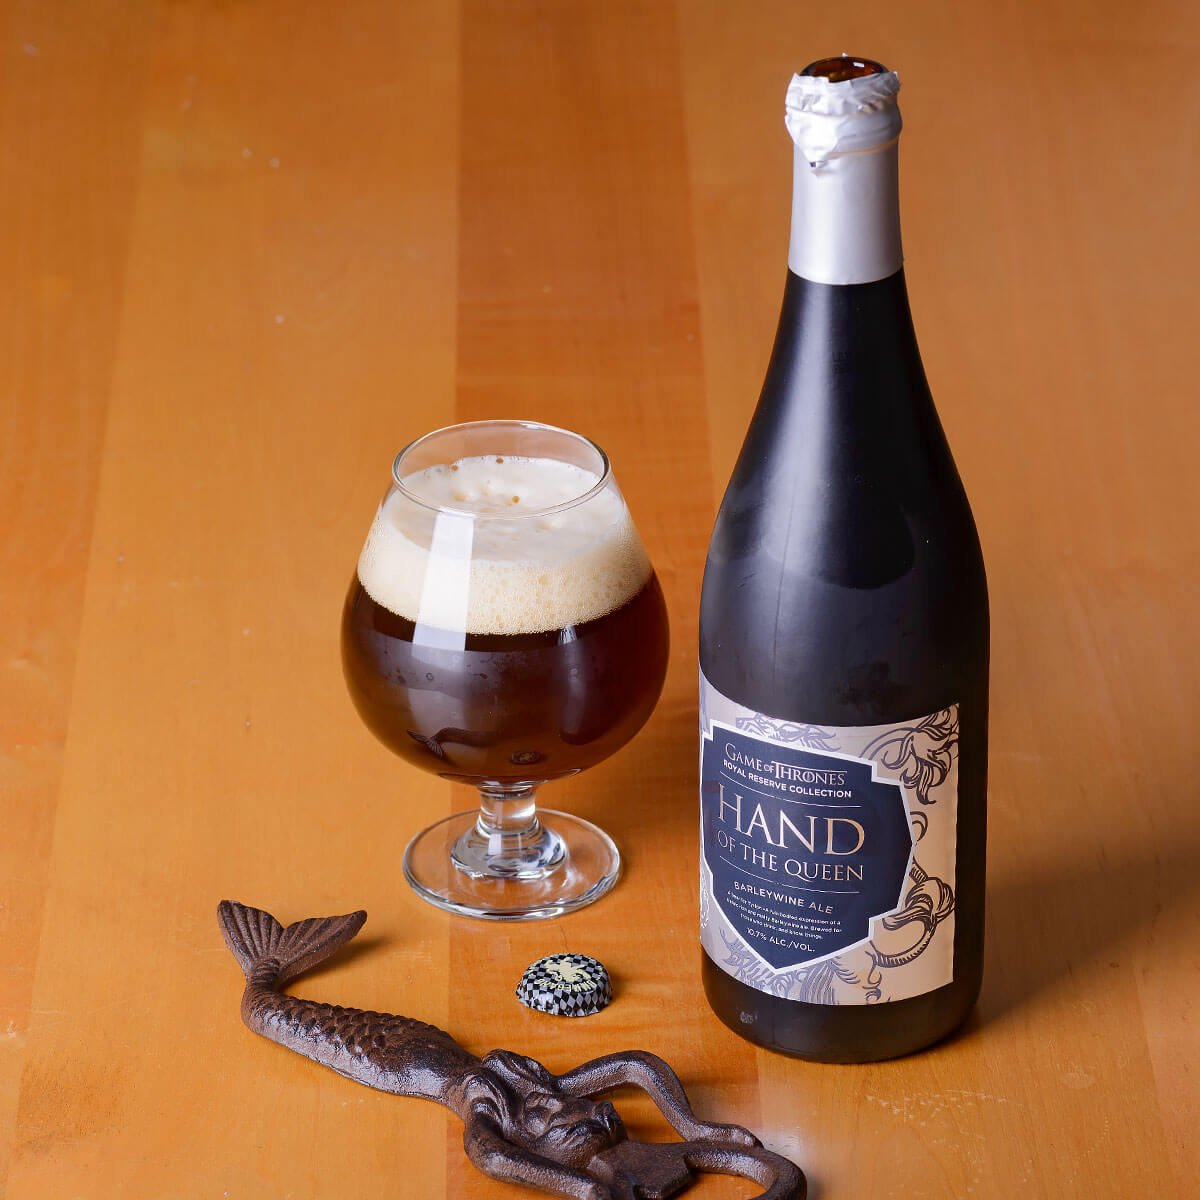 Royal Reserve Collection: Hand Of The Queen, an English-style Barleywine by Brewery Ommegang